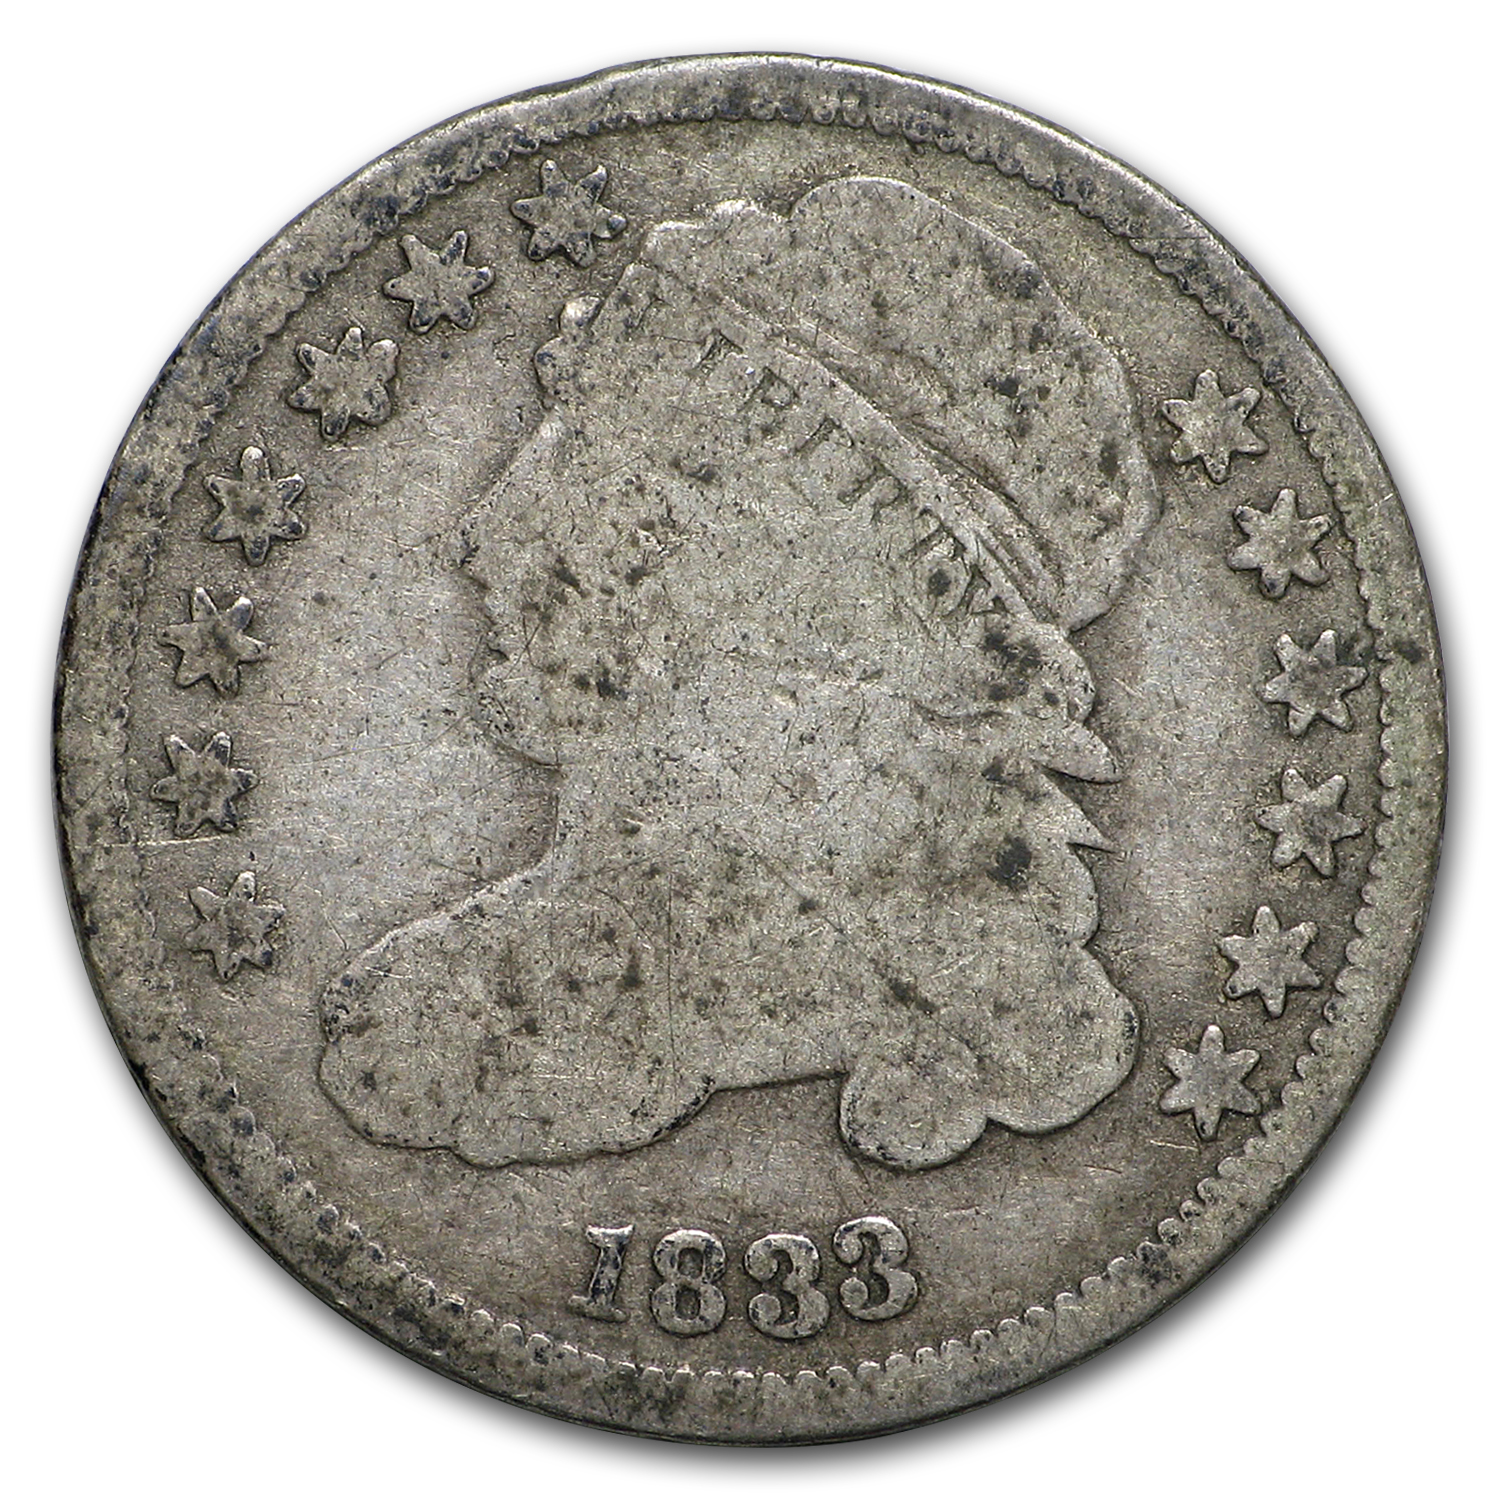 1833 Capped Bust Dime VG